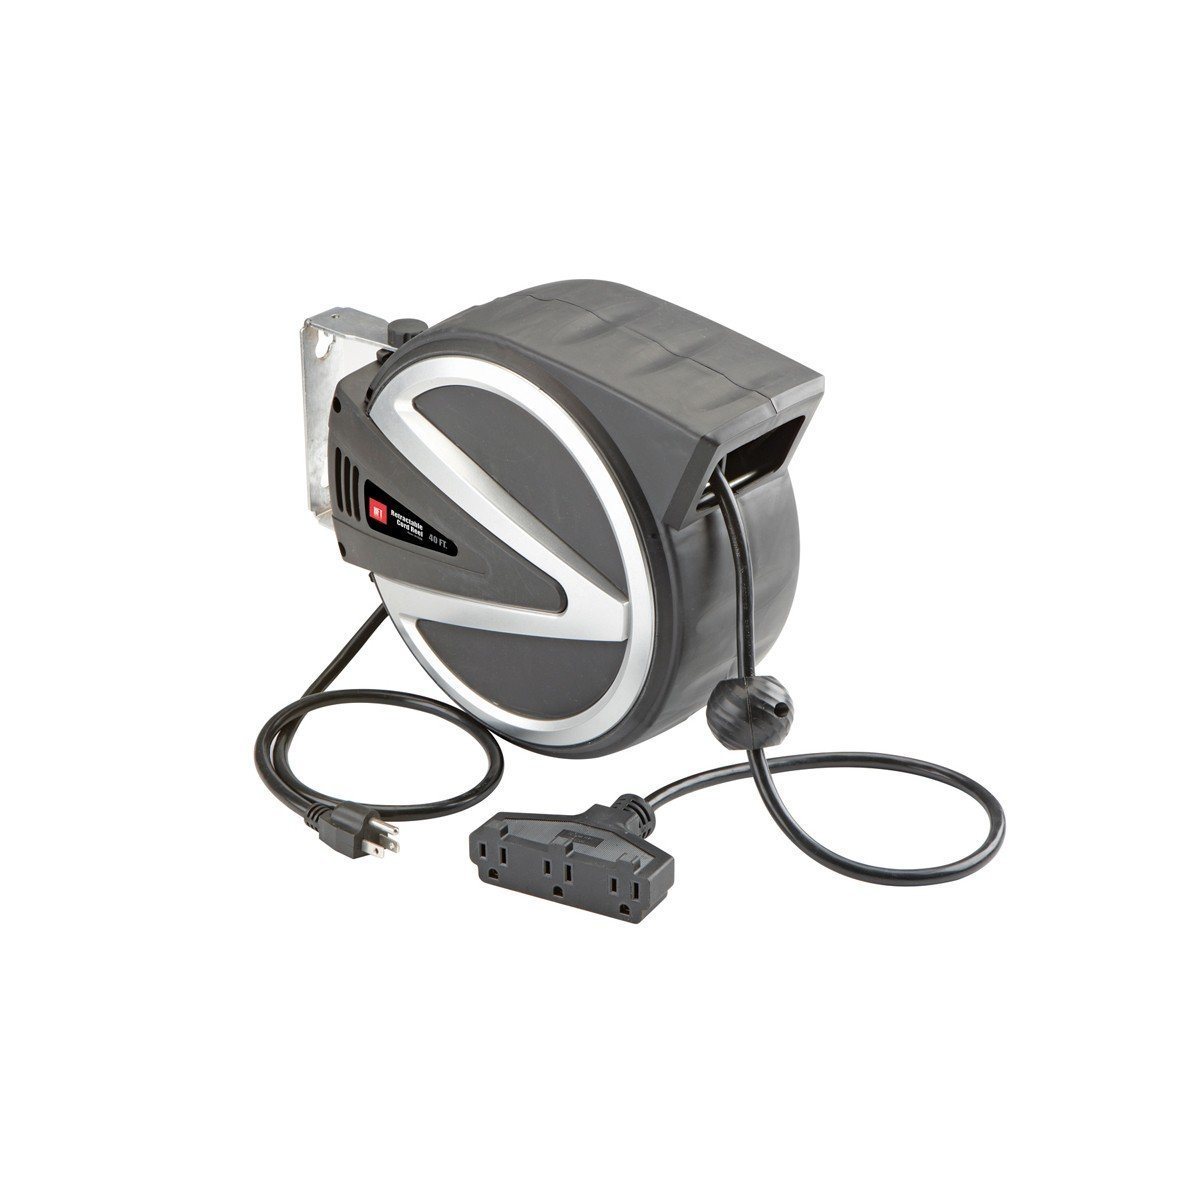 40 Ft. Retractable Cord Reel with Triple Tap Wall Mountable; Spring-loaded automatic rewind